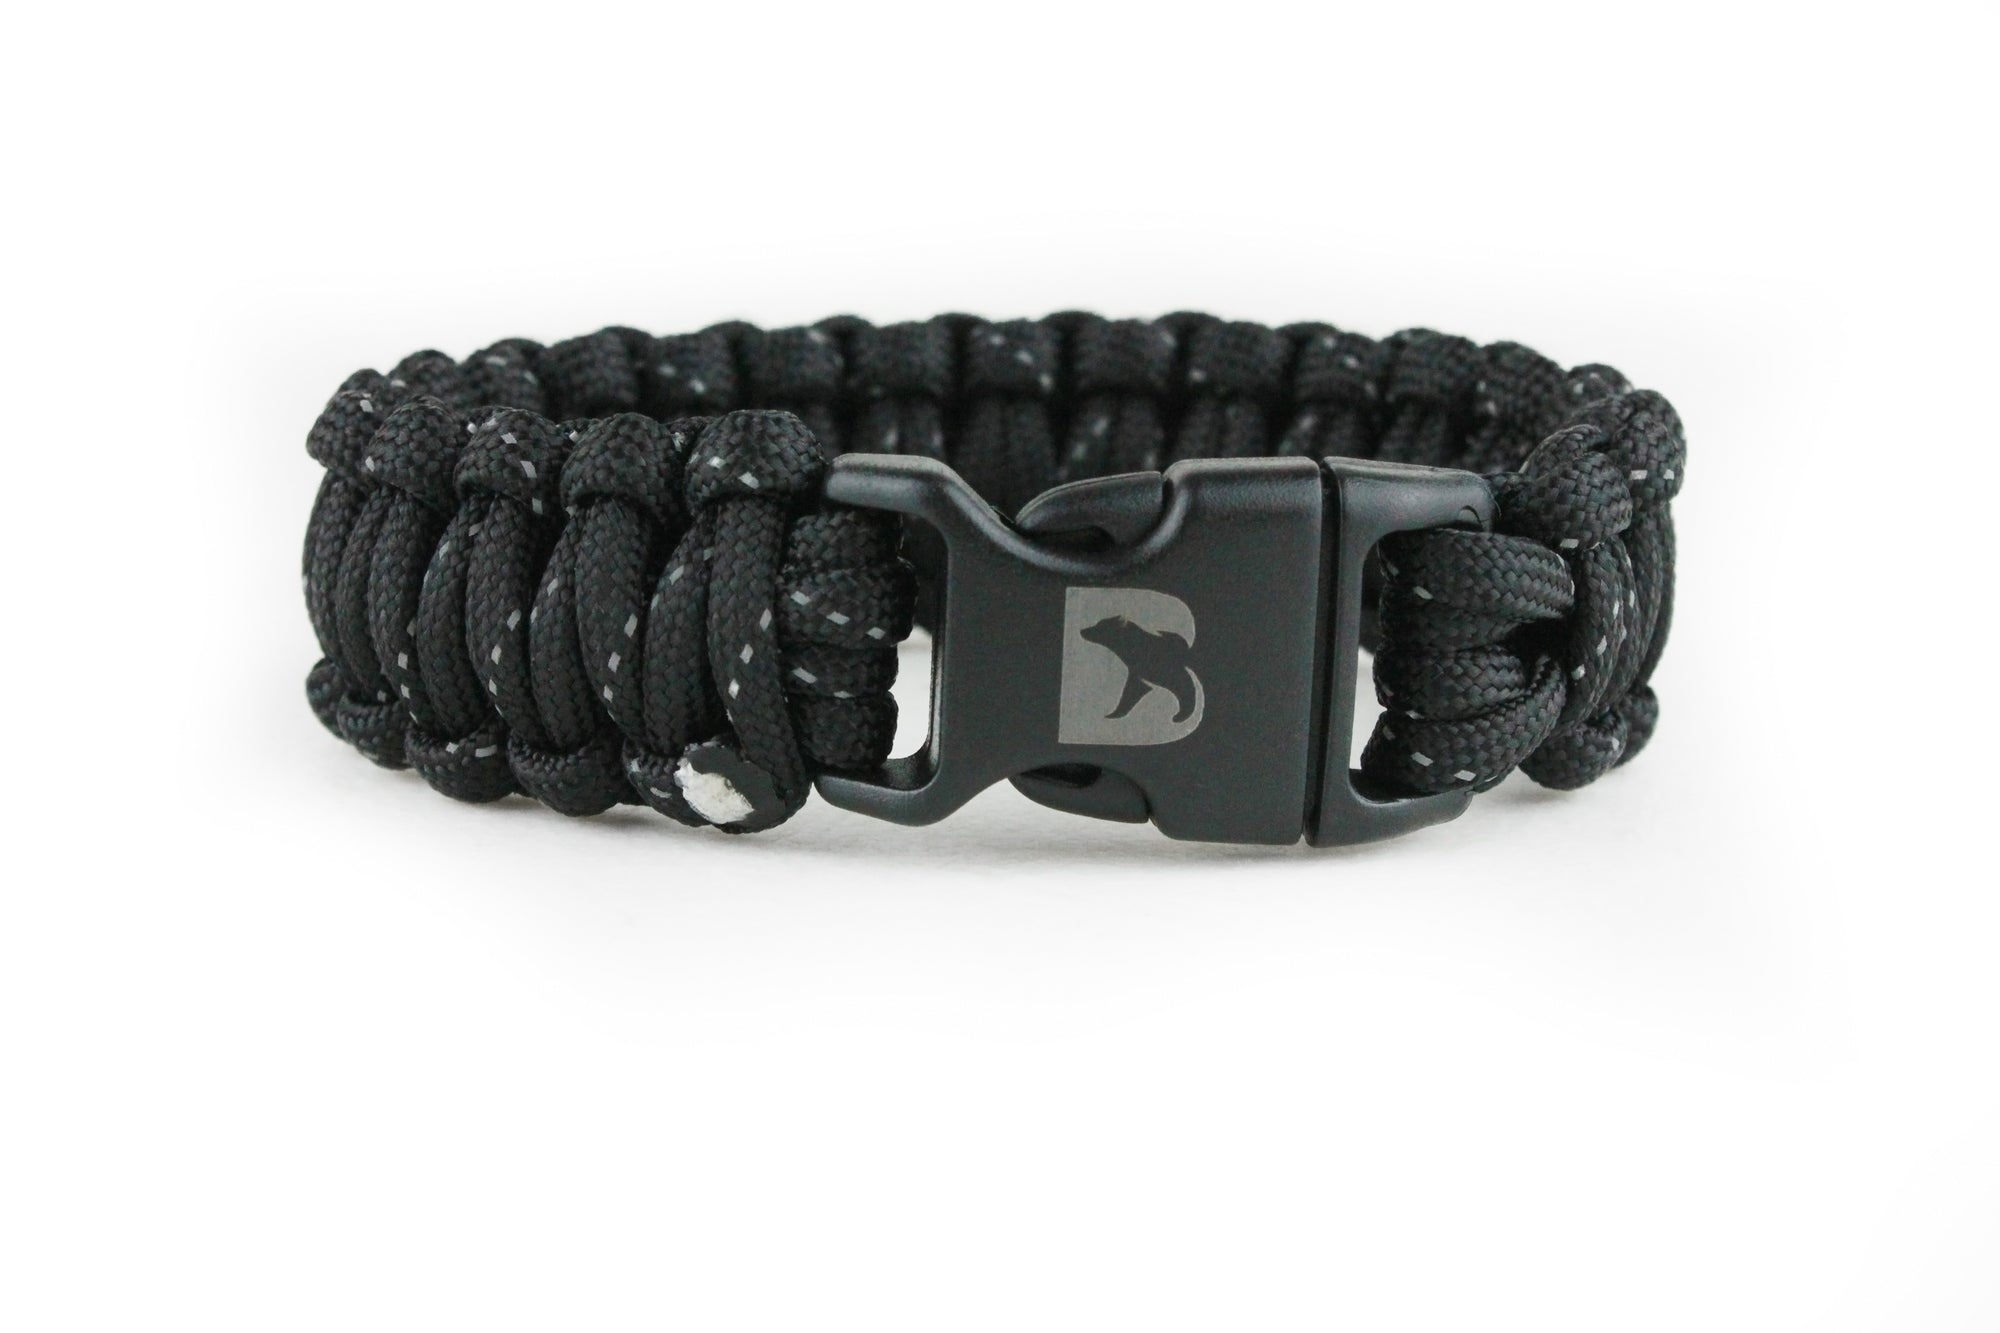 Reflective Black Paracord Bracelet